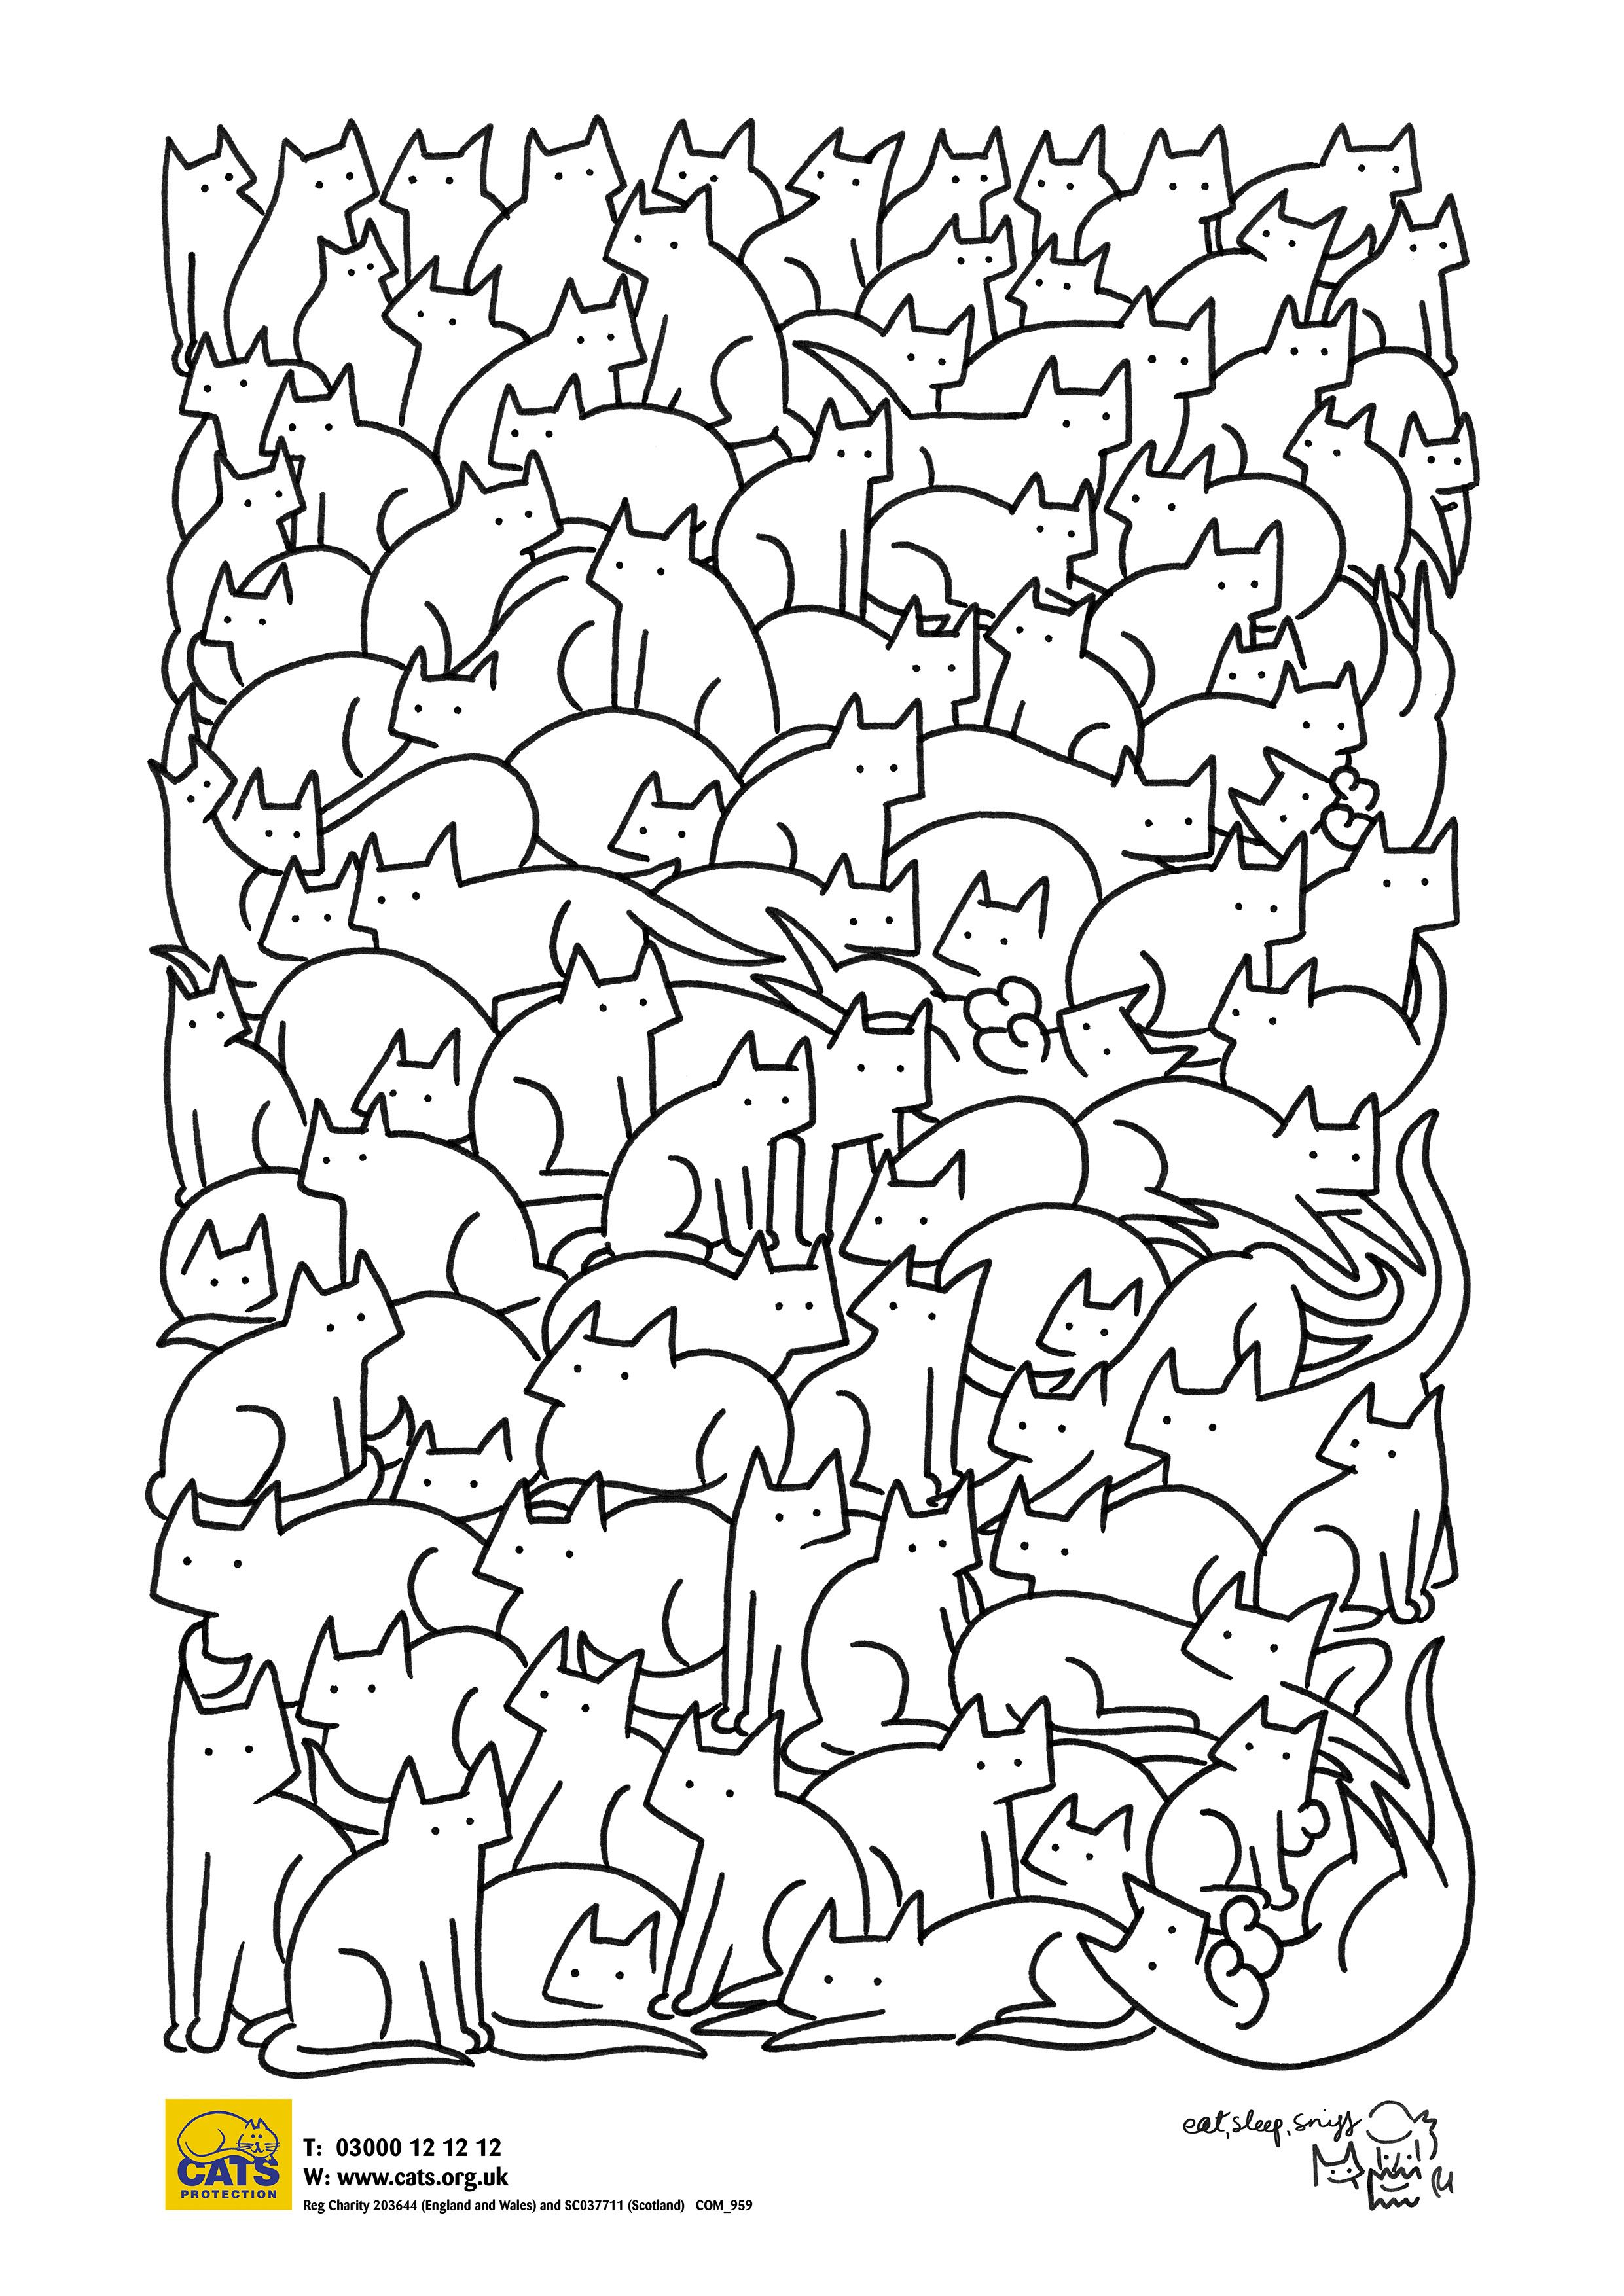 mindfulness cat colouring sheet